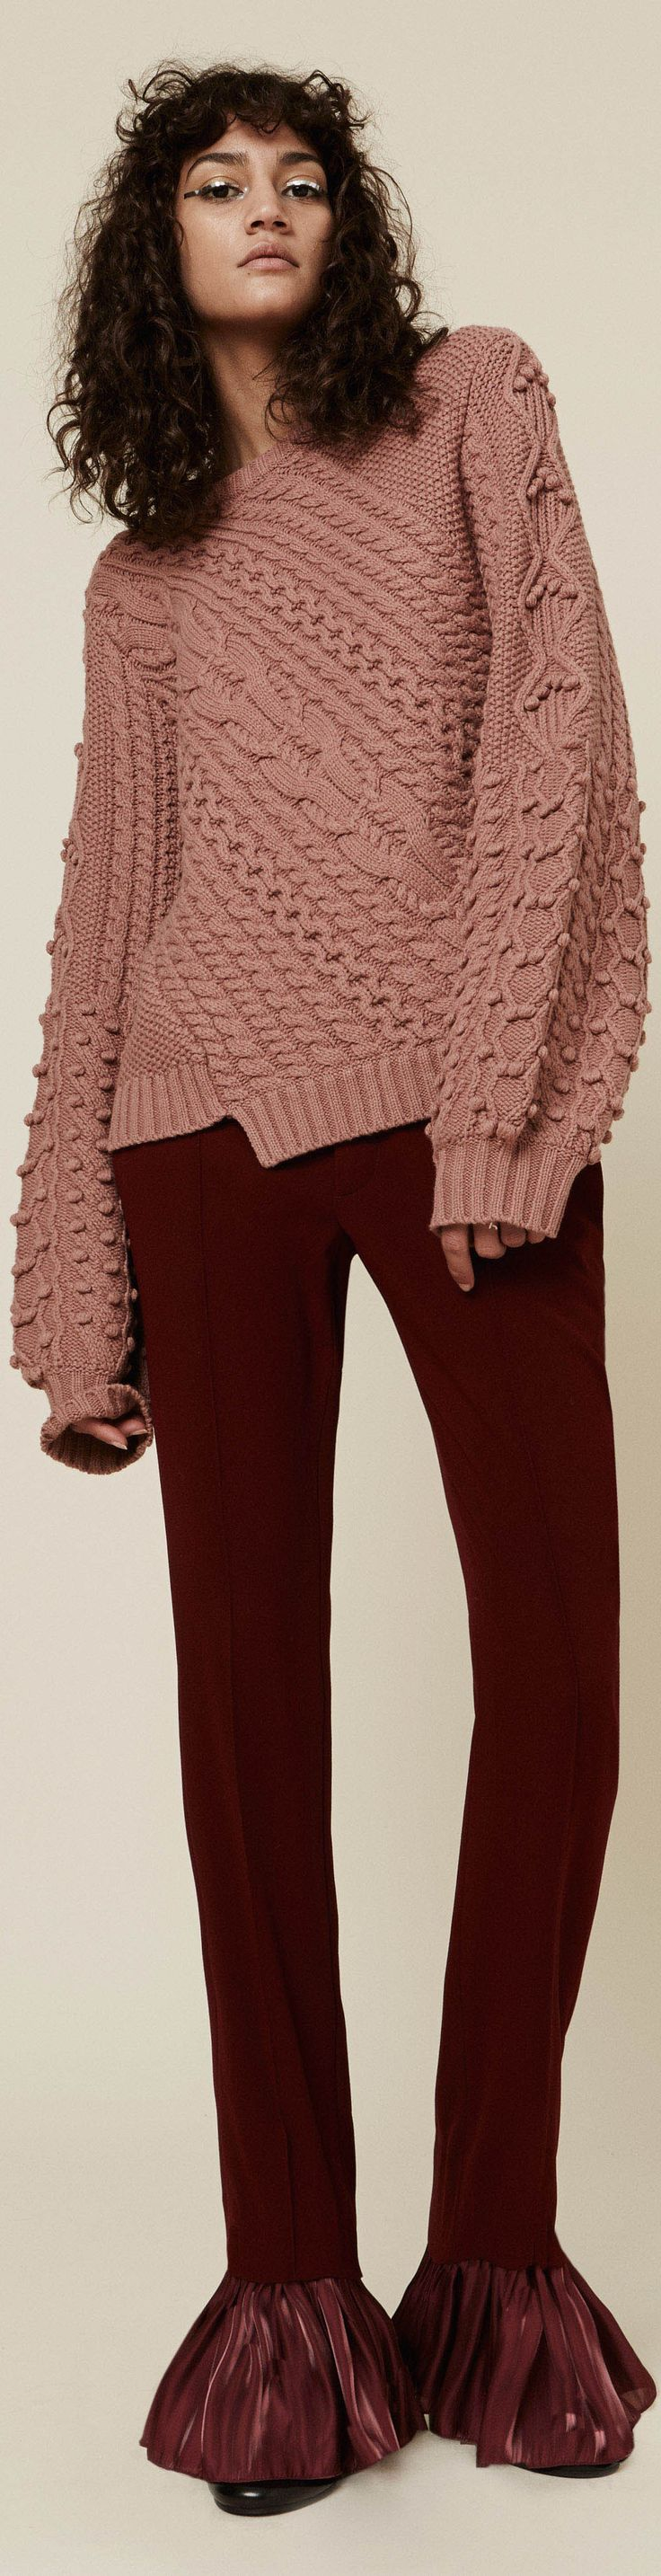 pink textured sweater | burgundy pants | shut up and take my money